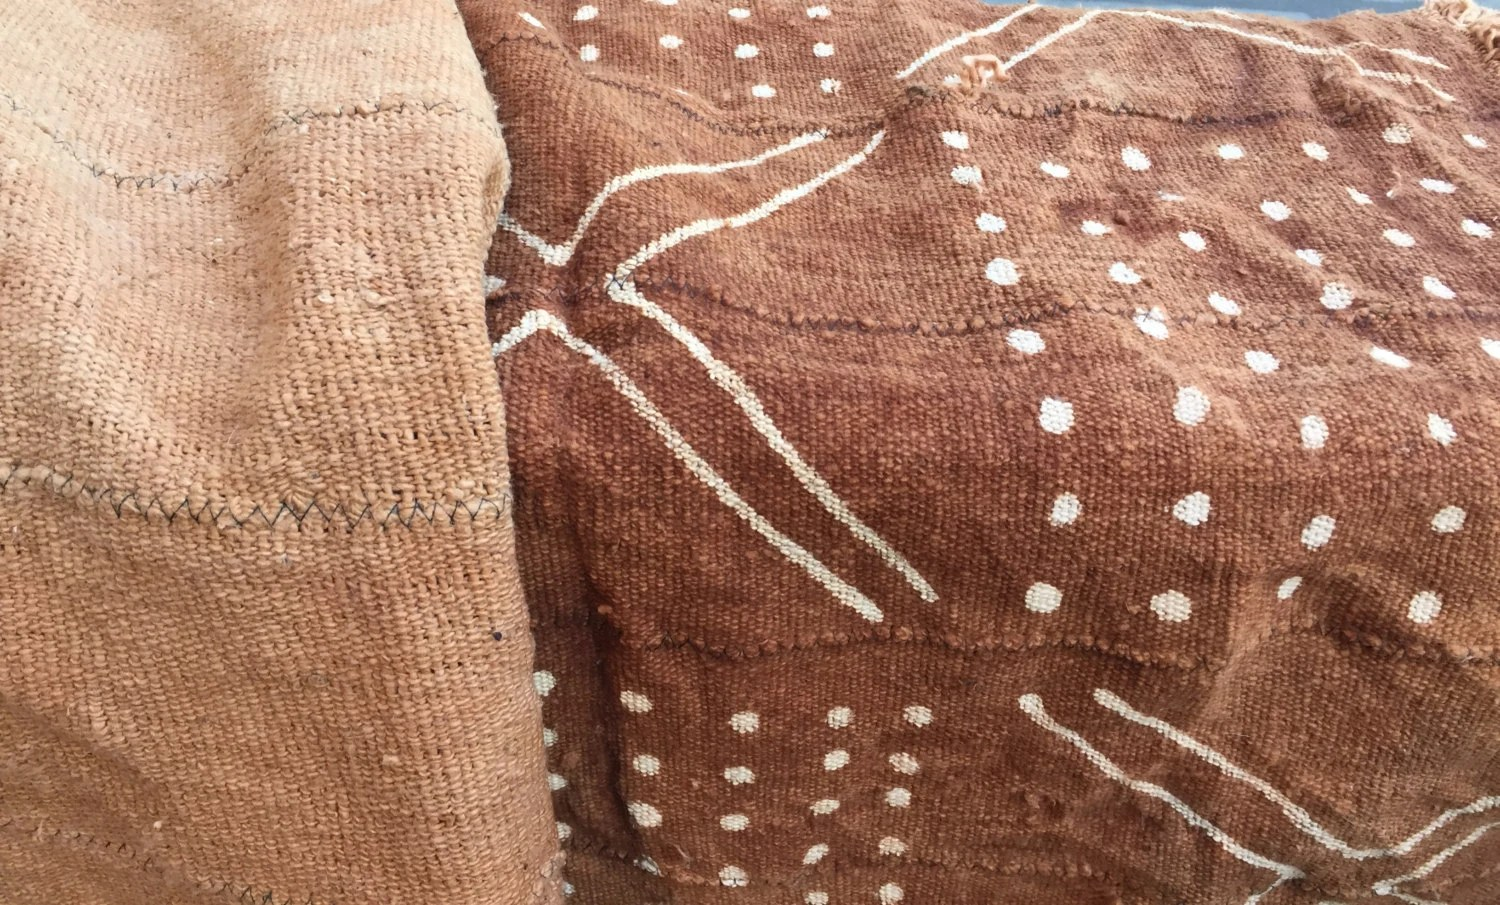 Rustic Upholstery Fabric Rust Mudcloth Fabric Throw Blanket 3'x5' Mud Cloth